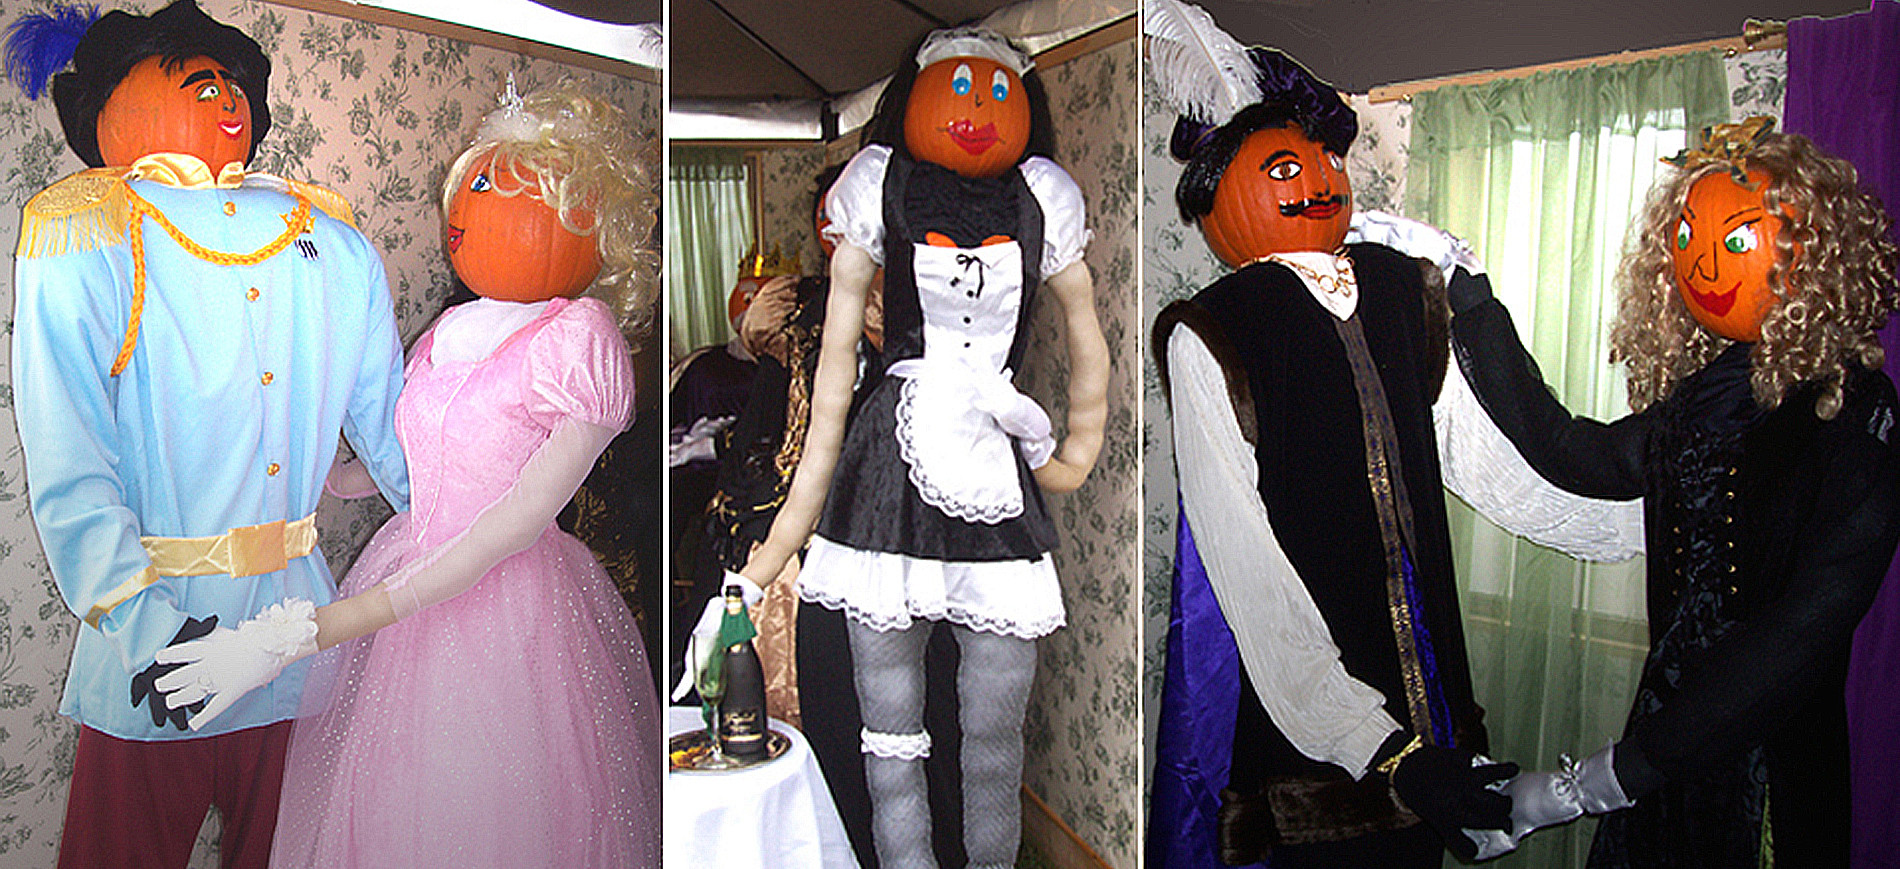 Collage of two pumpkin couples dancing with Fiona the pumpkin maid standing in the middle